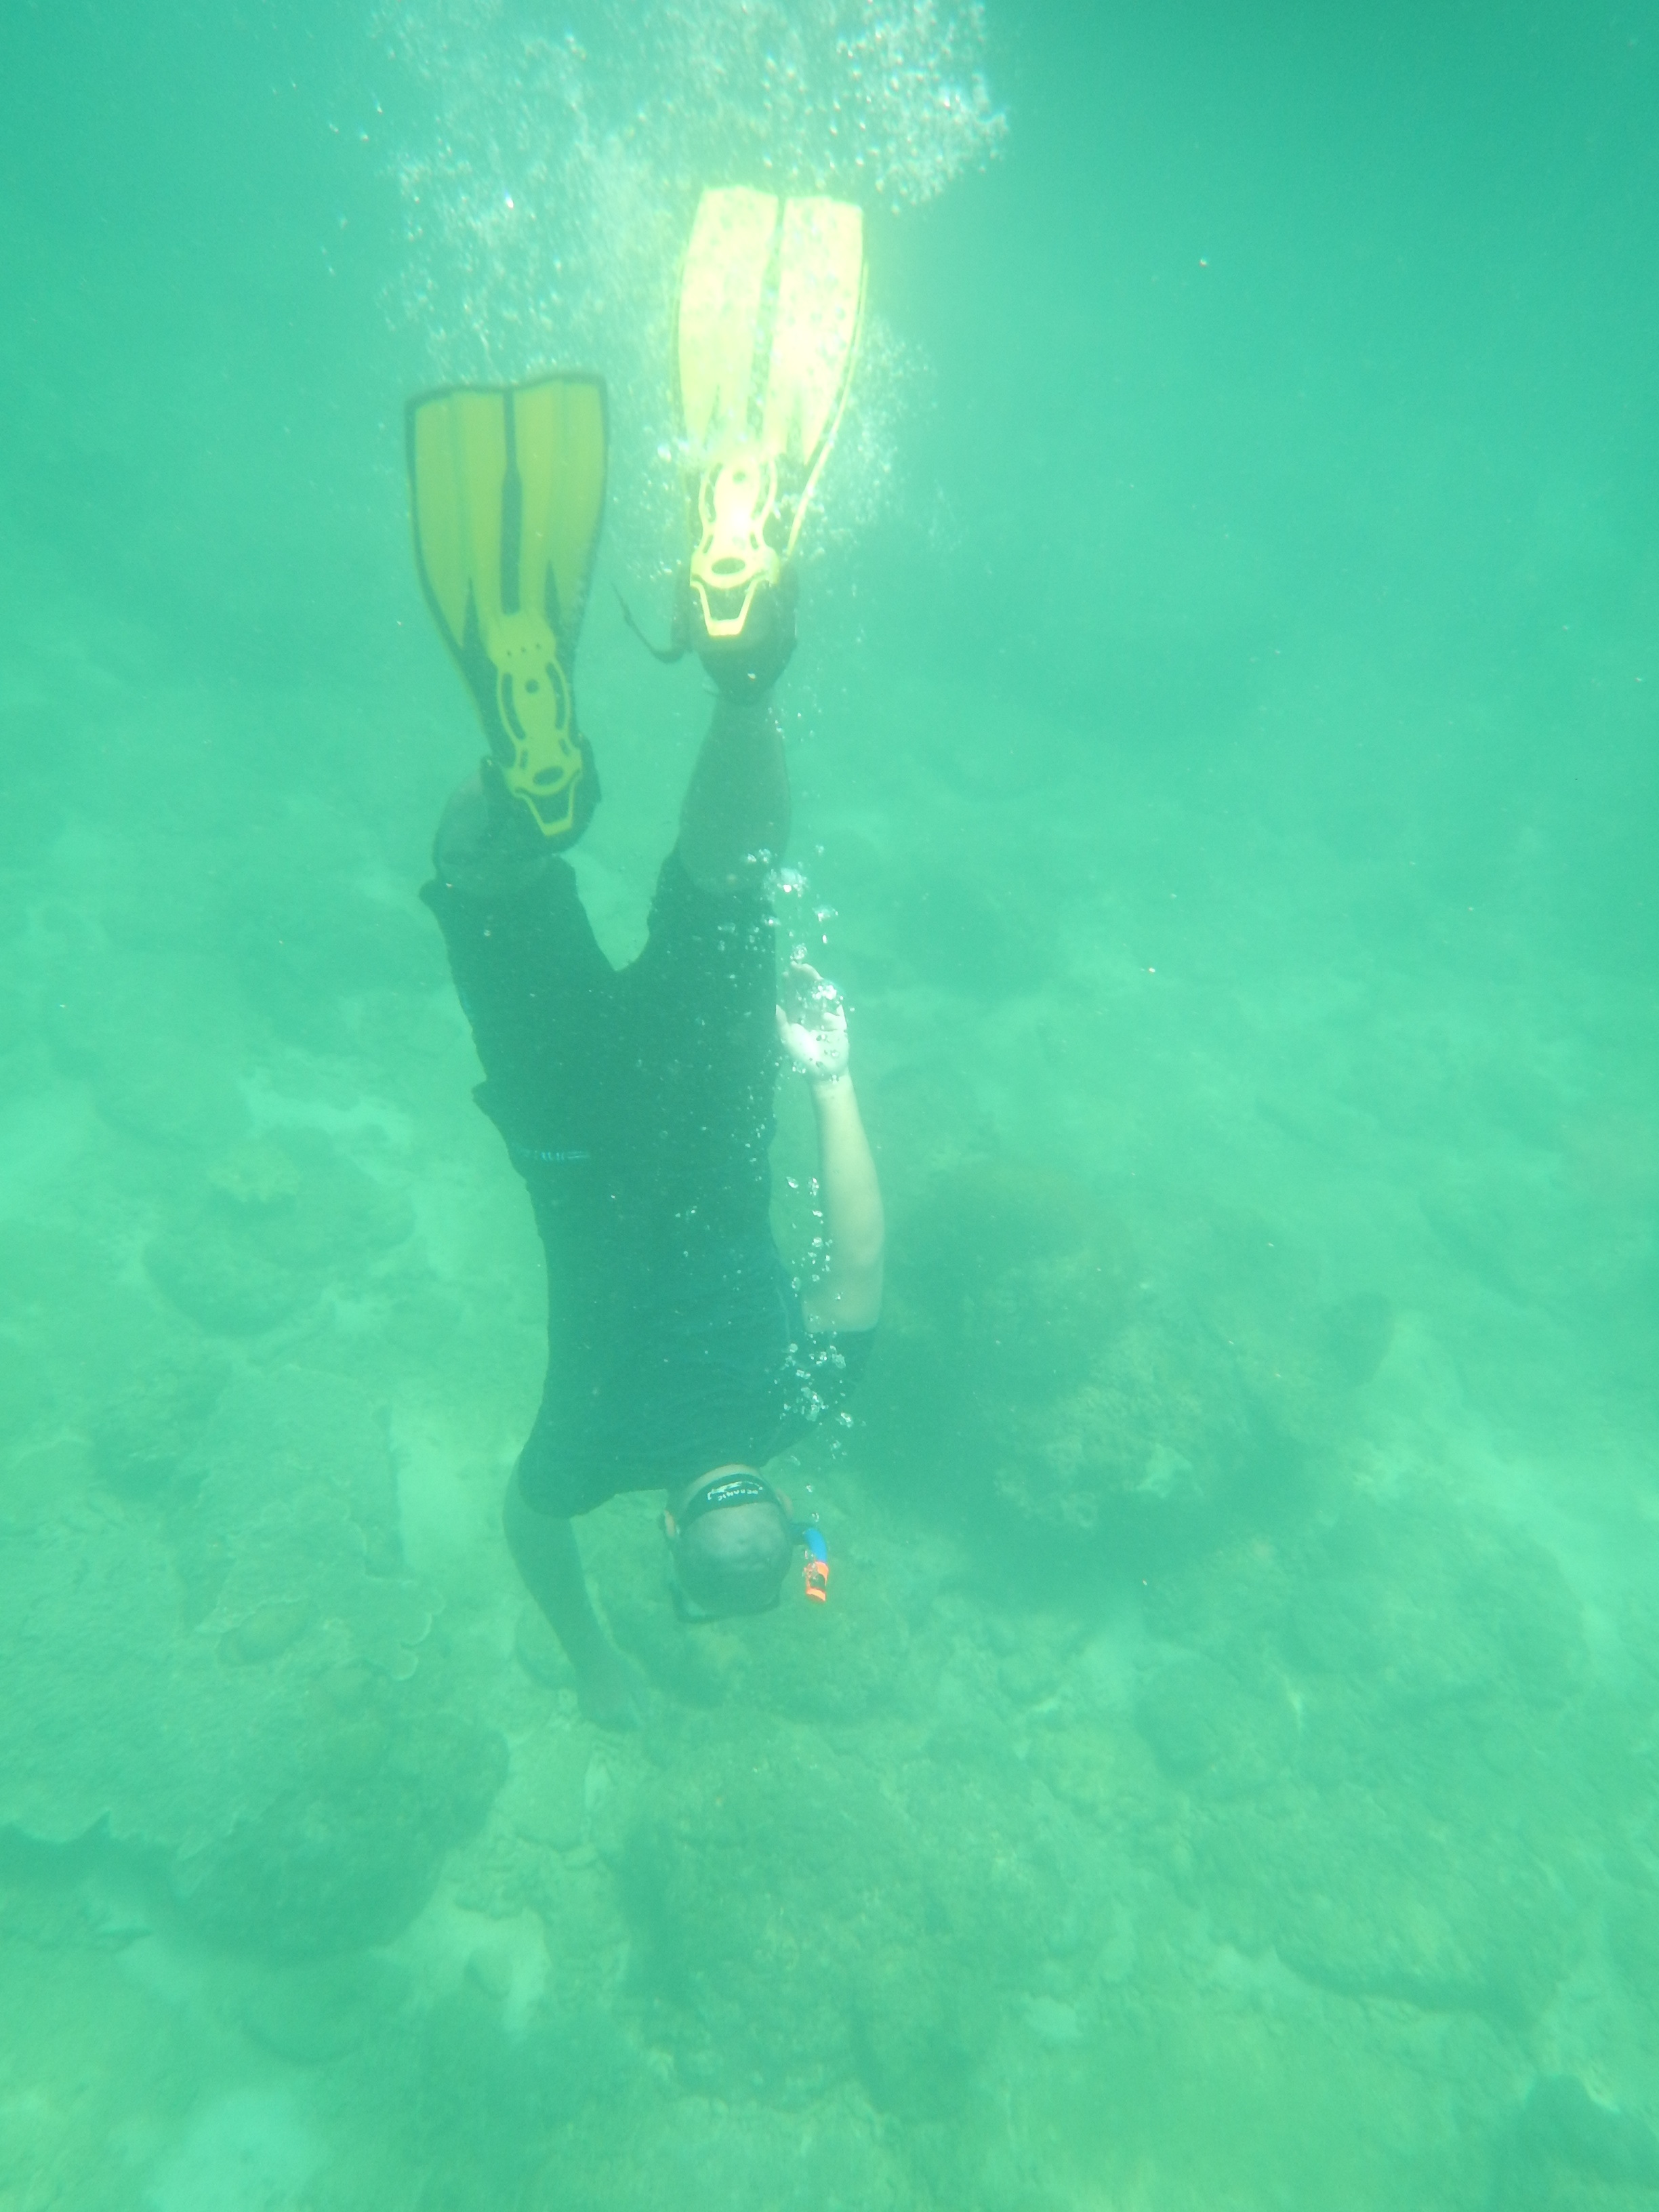 One of the dive instructors heading for the bottom.